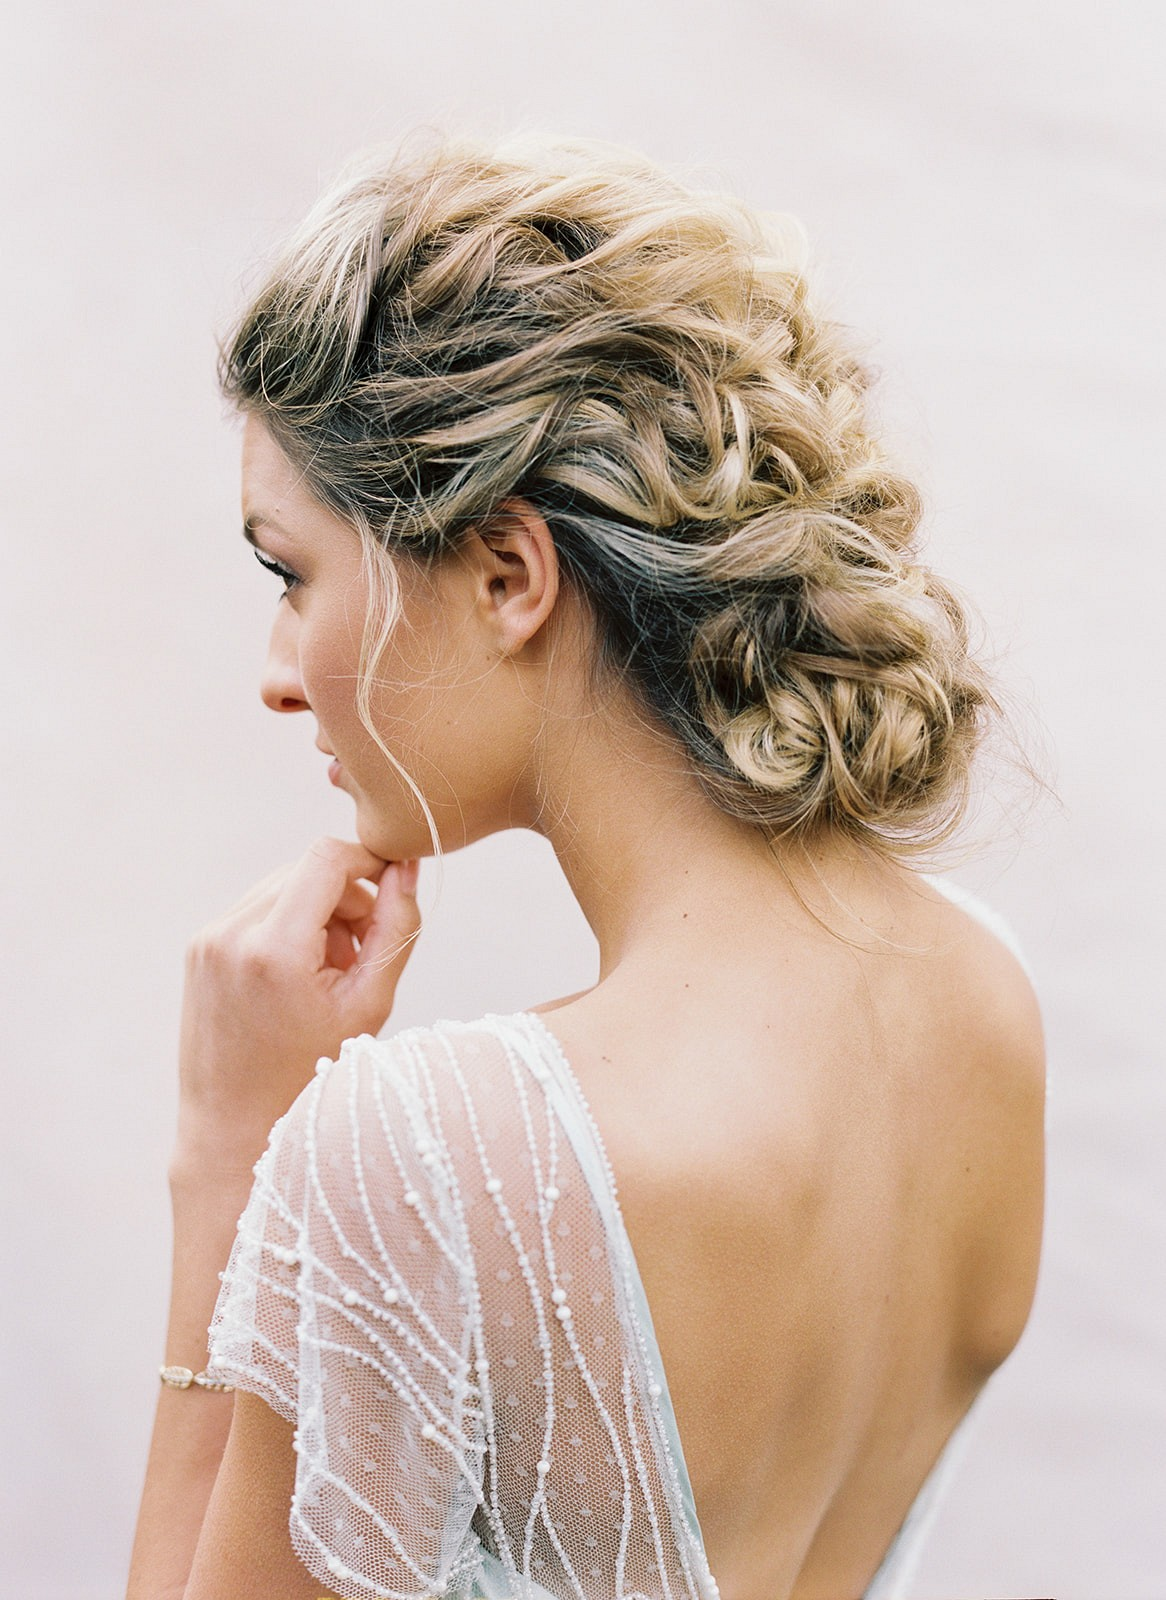 How to create the perfect messy up-do for your wedding